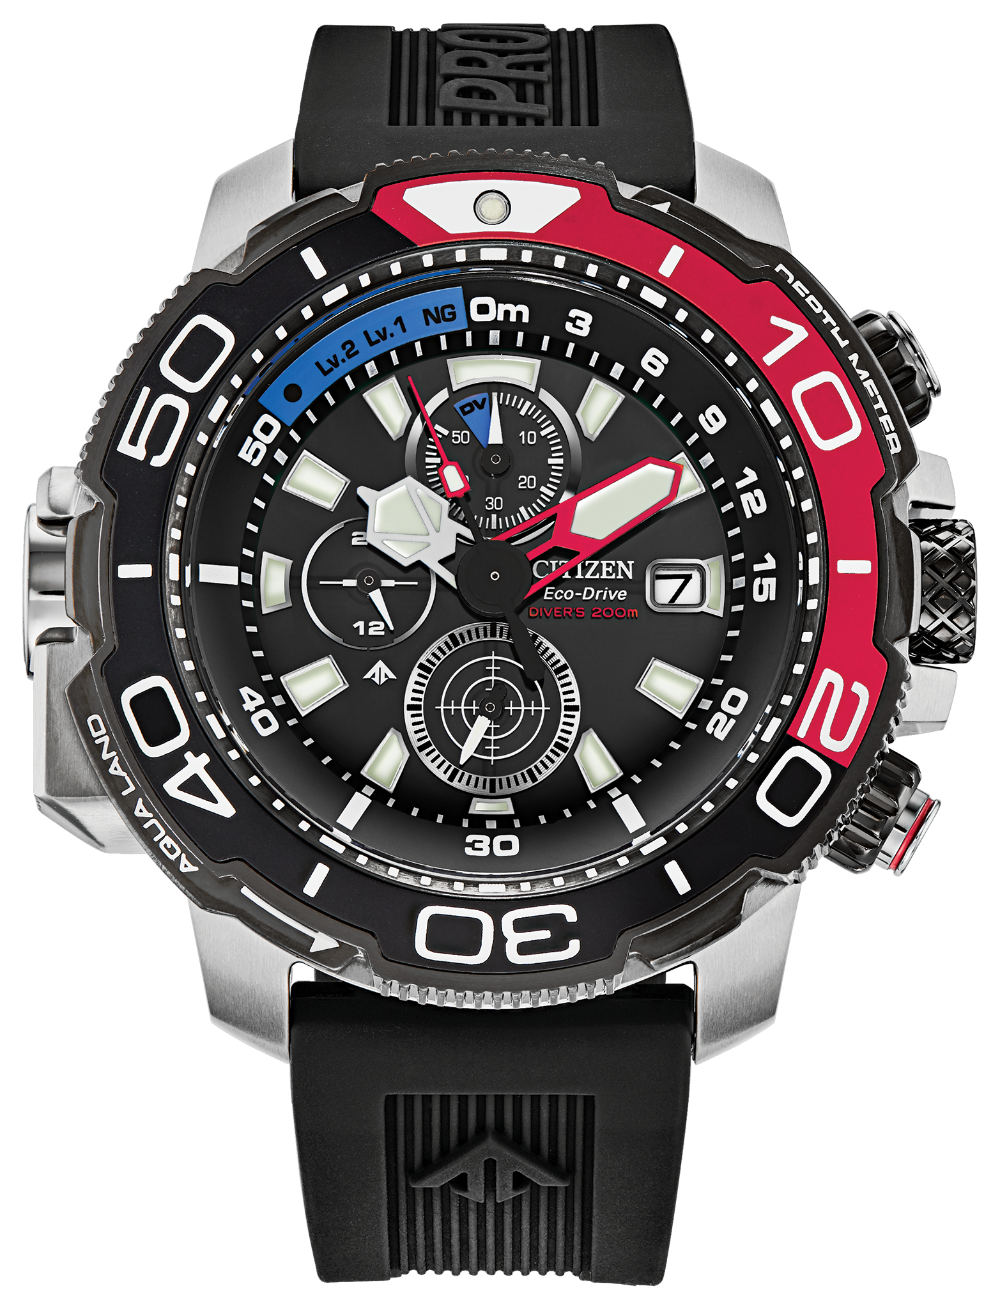 Promaster Aqualand Red Accent - Citizen Eco Drive